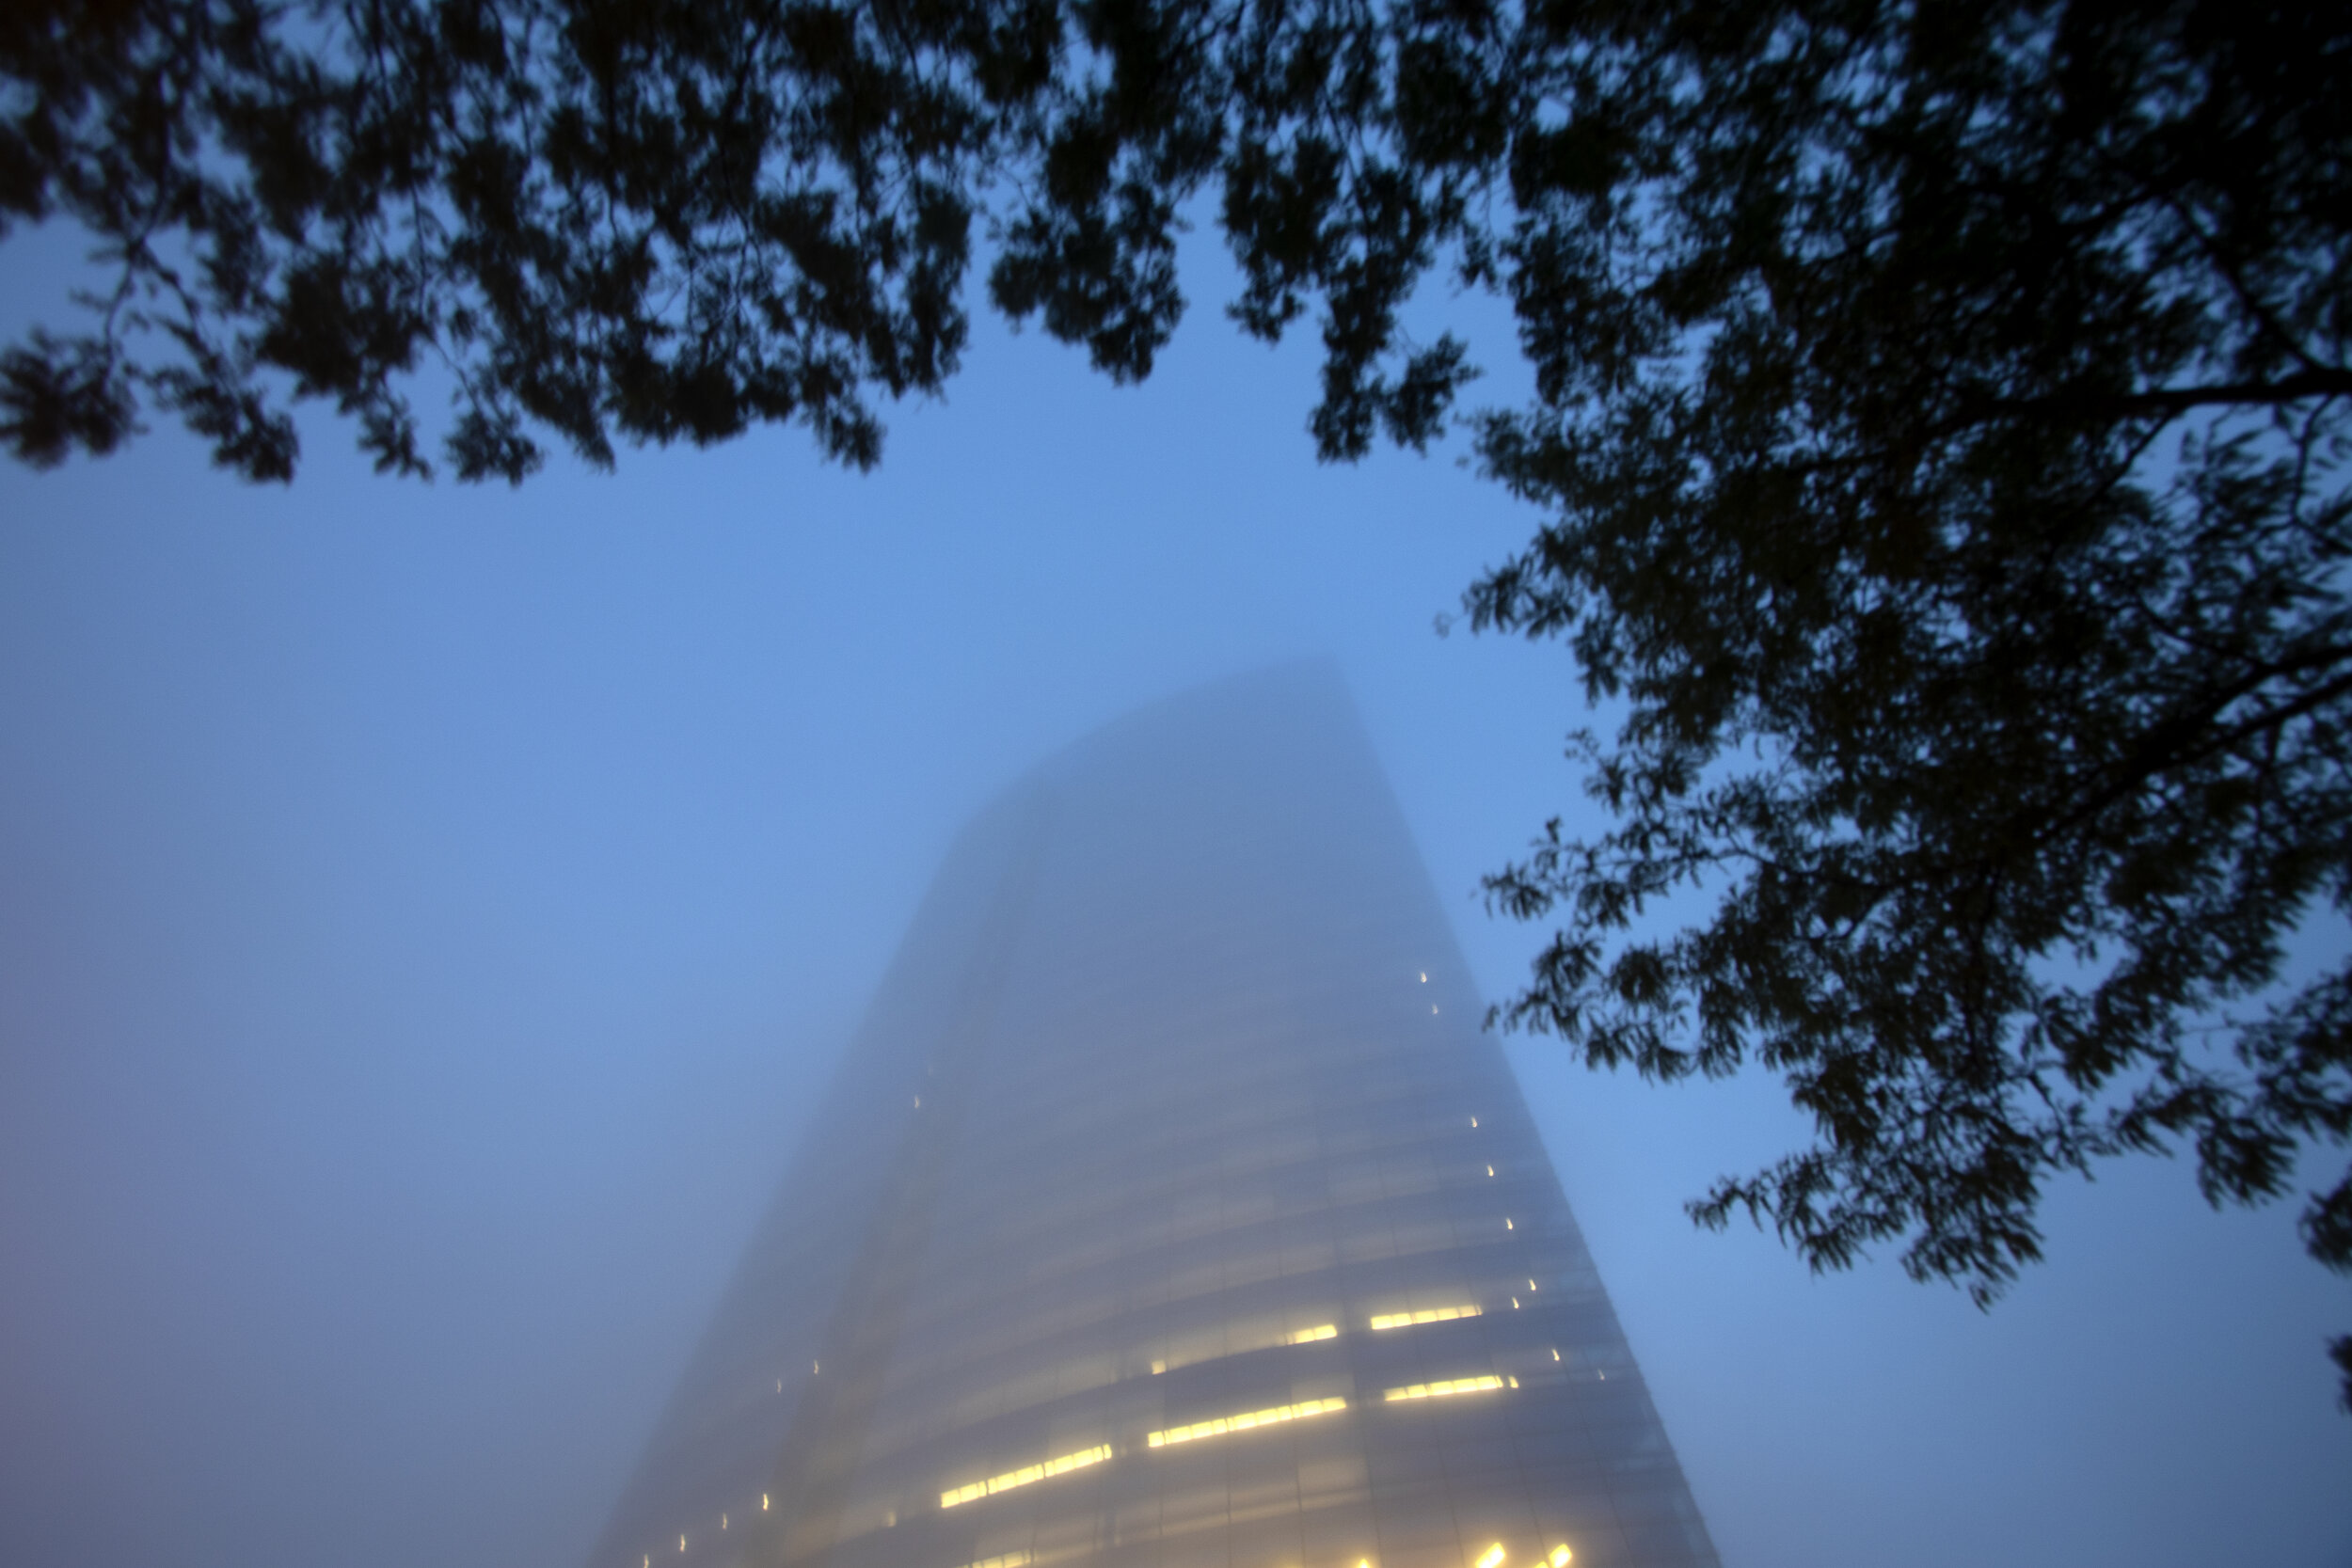 Milwaukee_Northwestern Mutual Tower_Fog_012_20190703_IMG_7711.jpg